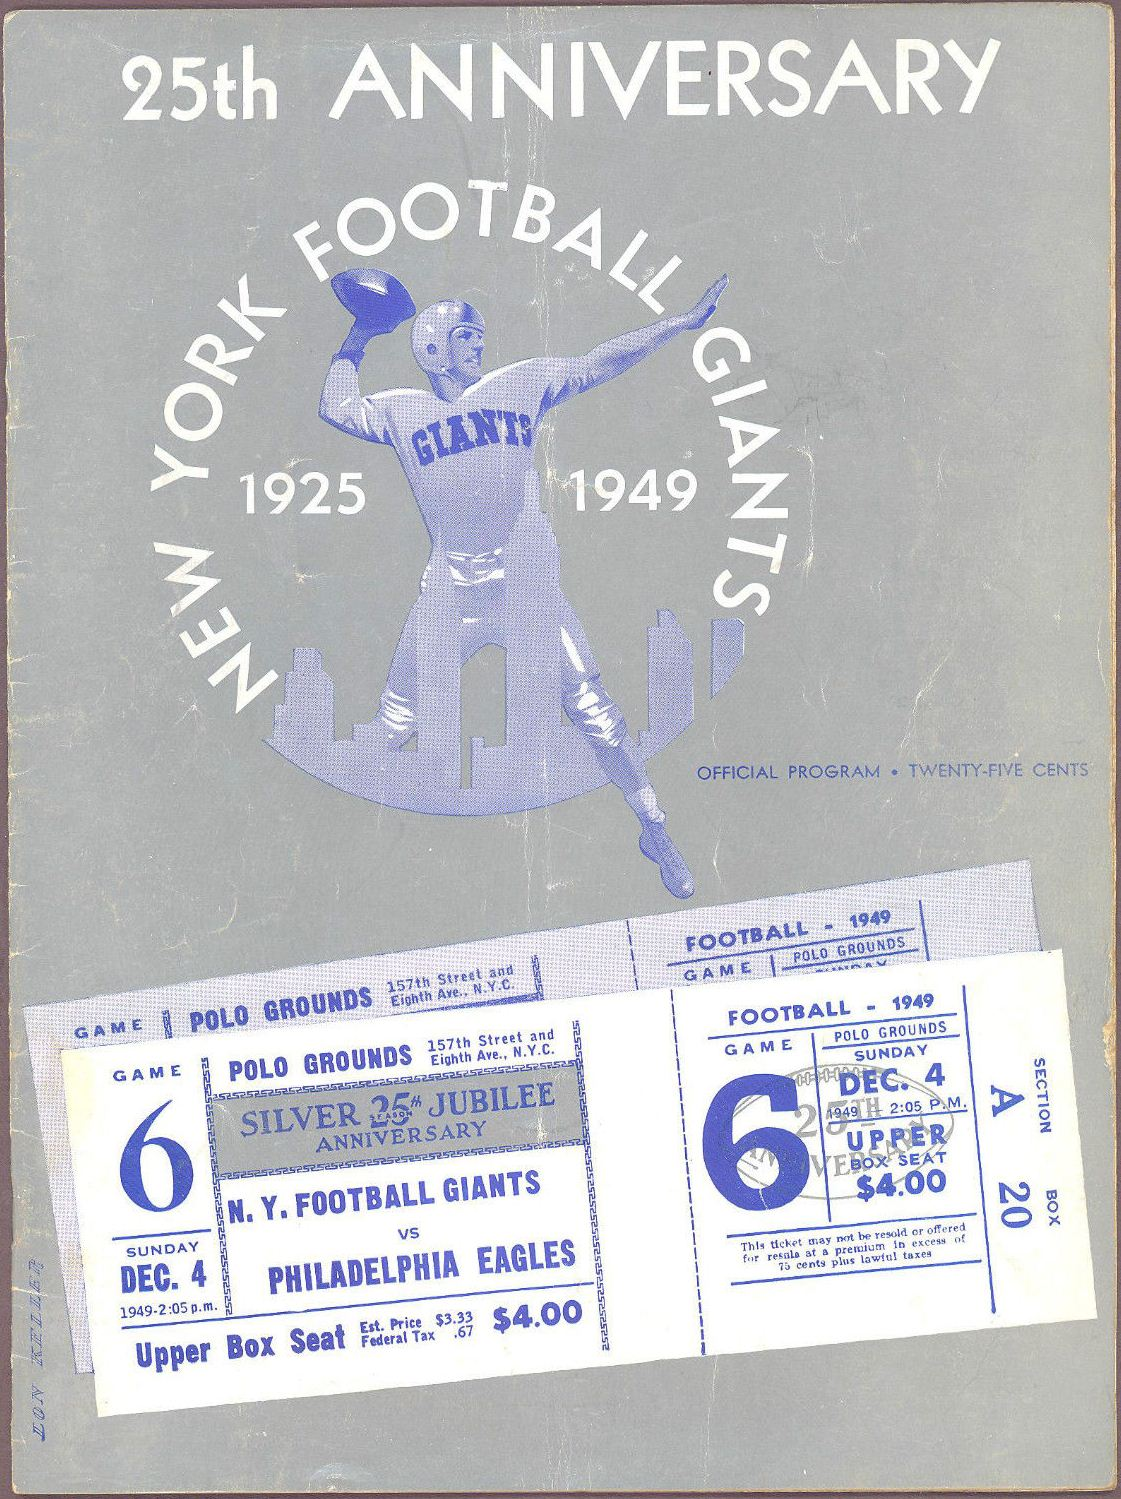 Philadelphia Eagles at New York Giants Game Program (December 4, 1949)